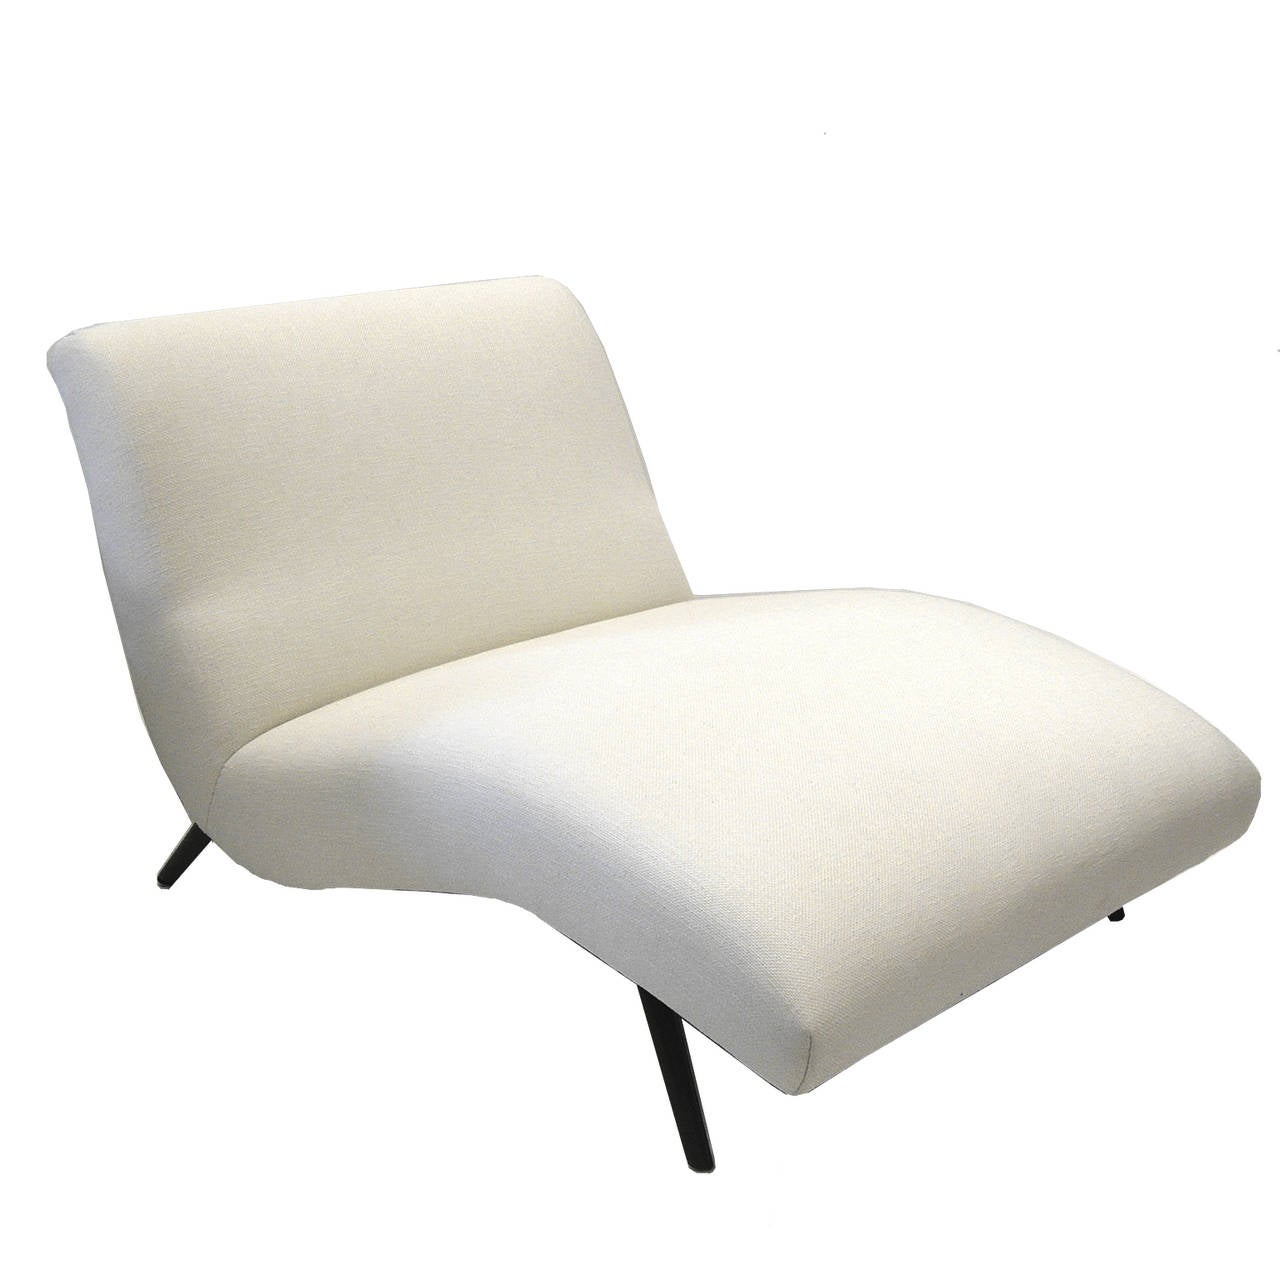 Stunning kagan style wave chaise longue at 1stdibs for Chaise longue wave